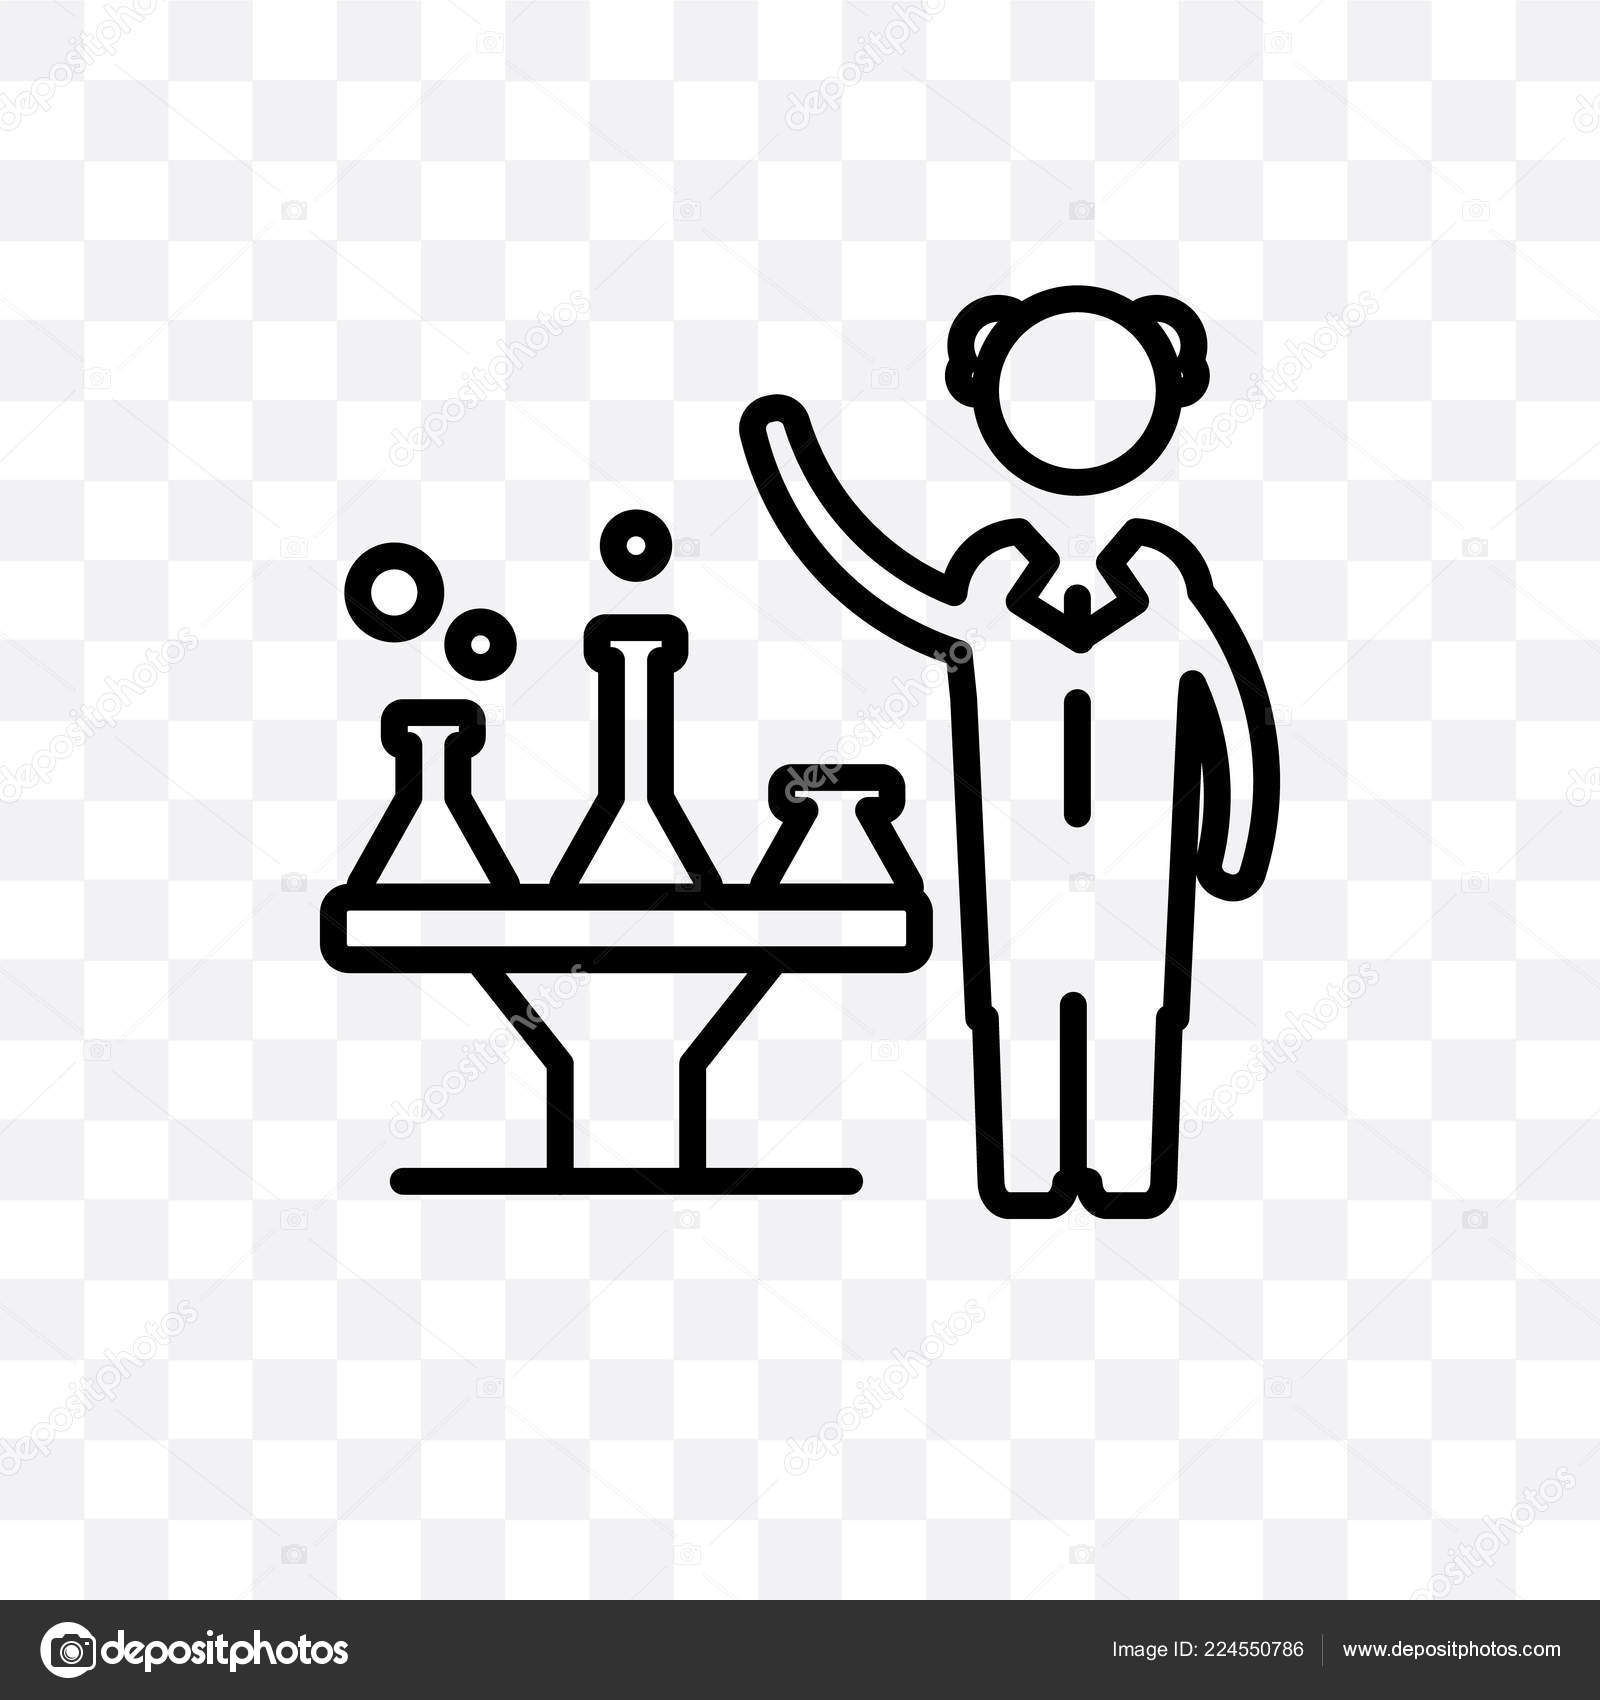 scientist vector linear icon isolated transparent background scientist transparency concept stock vector c coolvectorstock 224550786 https depositphotos com 224550786 stock illustration scientist vector linear icon isolated html